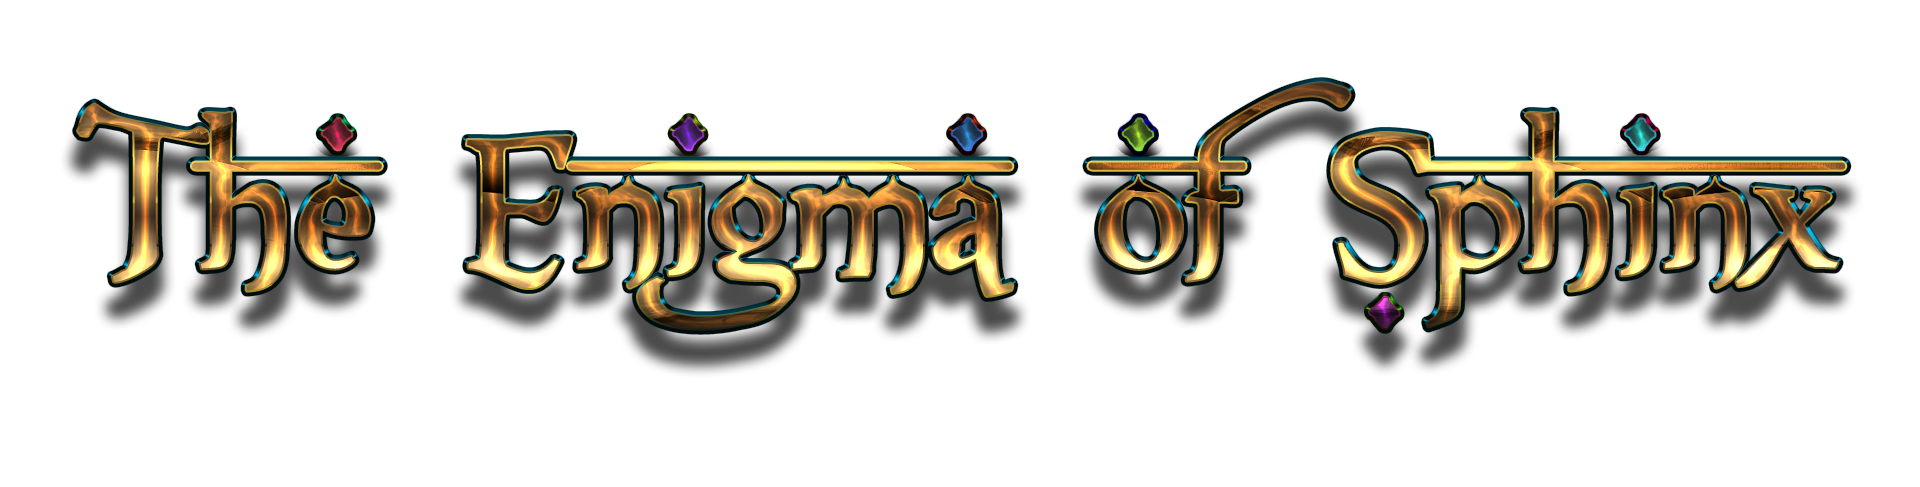 Enigma of the Sphynx